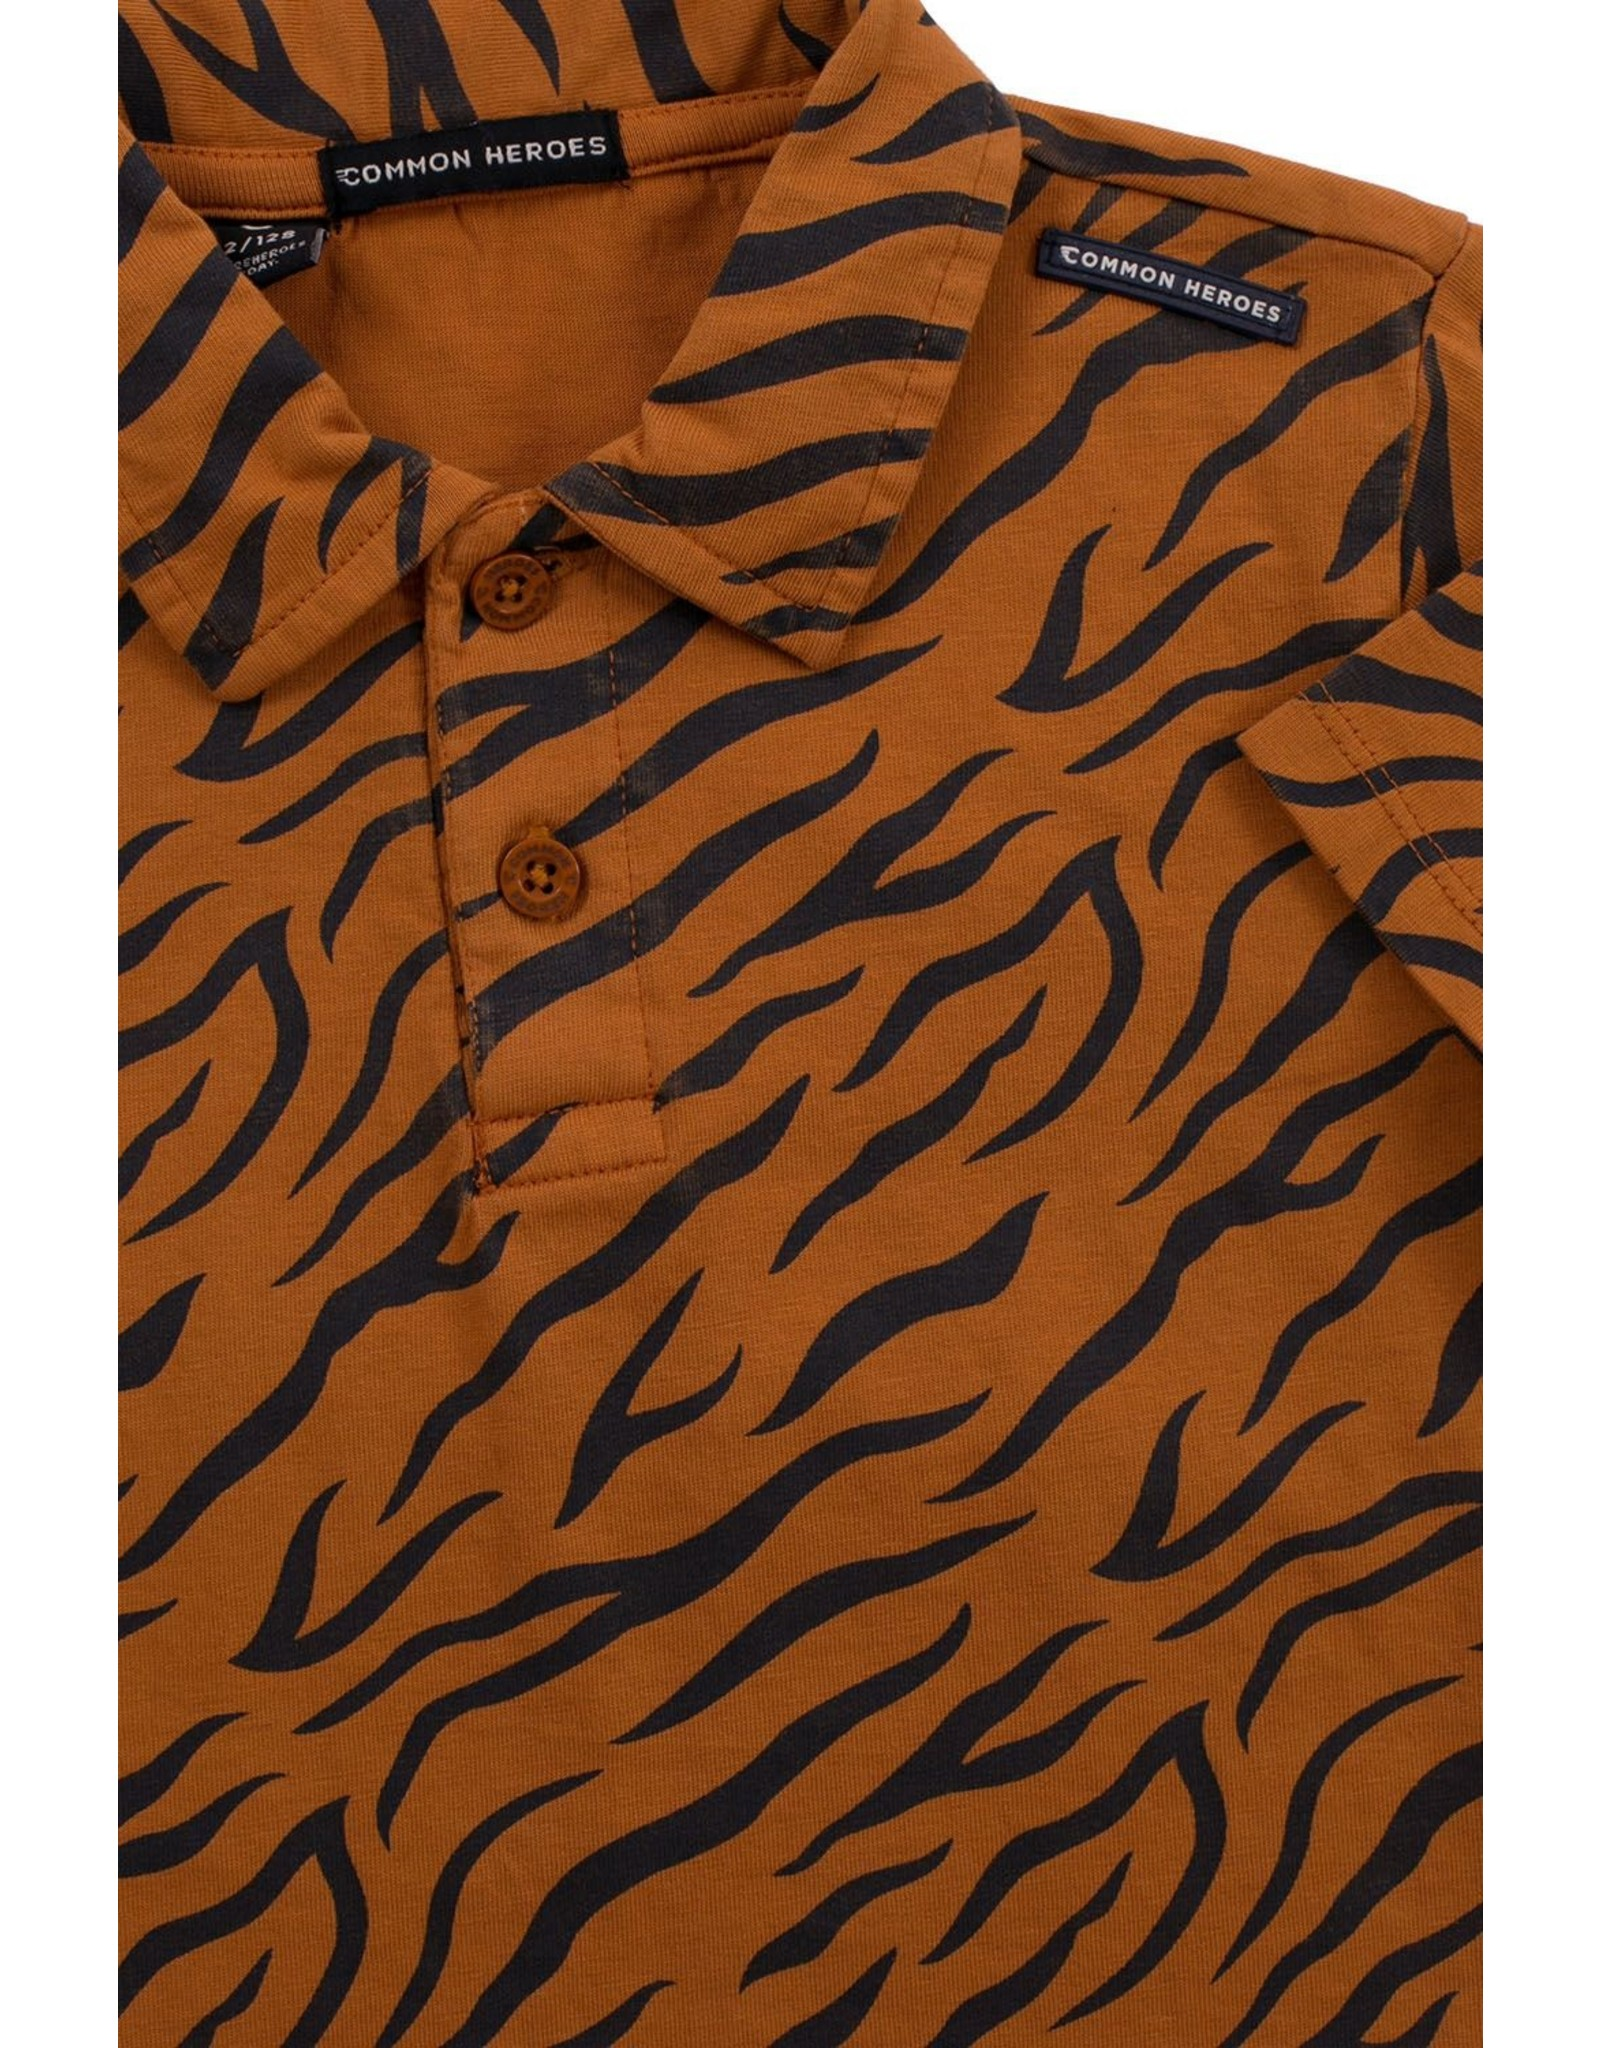 Common Heroes PHILIP POLO with AO TIGER PRINT